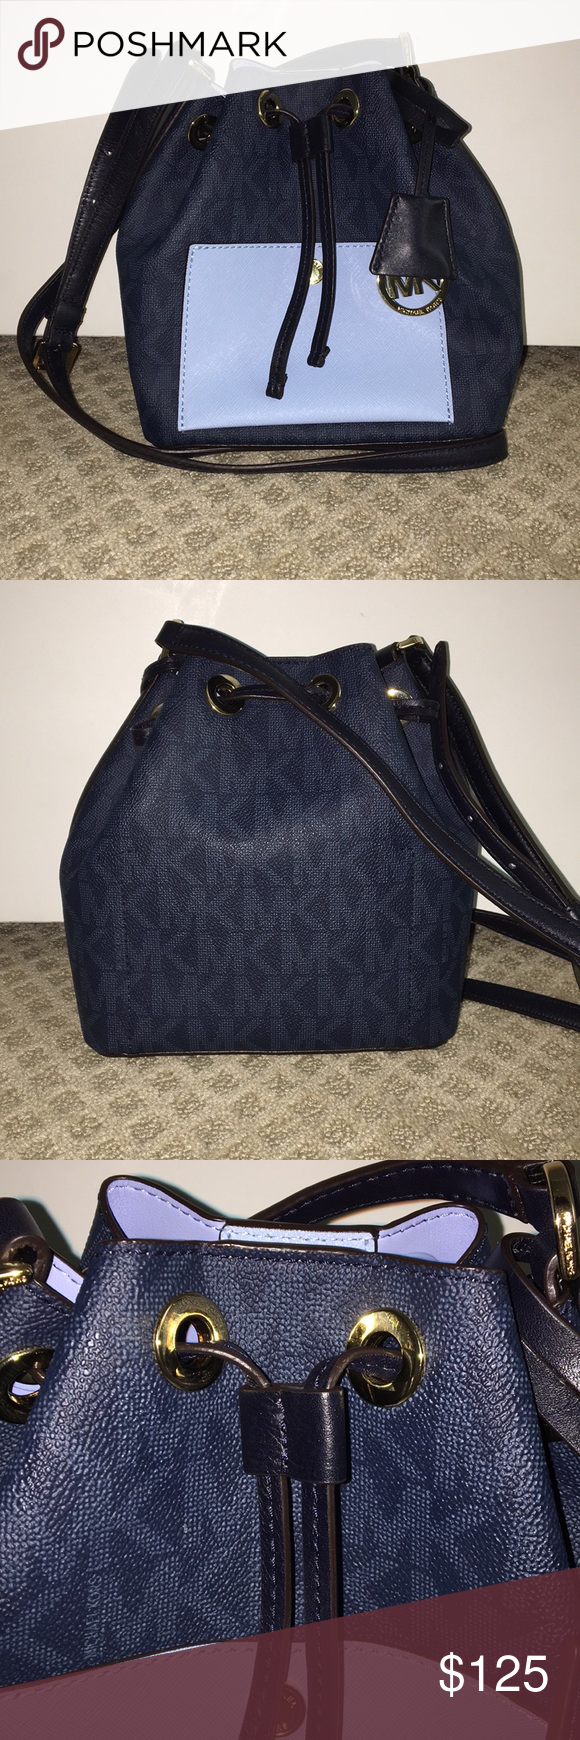 Blue Michael Kors logo bucket crossbody Navy and light blue Michael Kors logo bucket crossbody bag. Drawstring with magnet to open and close with an outside button pocket and one pocket inside. 9in wide 3.5 in depth 8in high. Adjustable strap is about 40 in total. Never worn and still with plastic on bottom of bag and comes with cloth bag. Michael Kors Bags Crossbody Bags